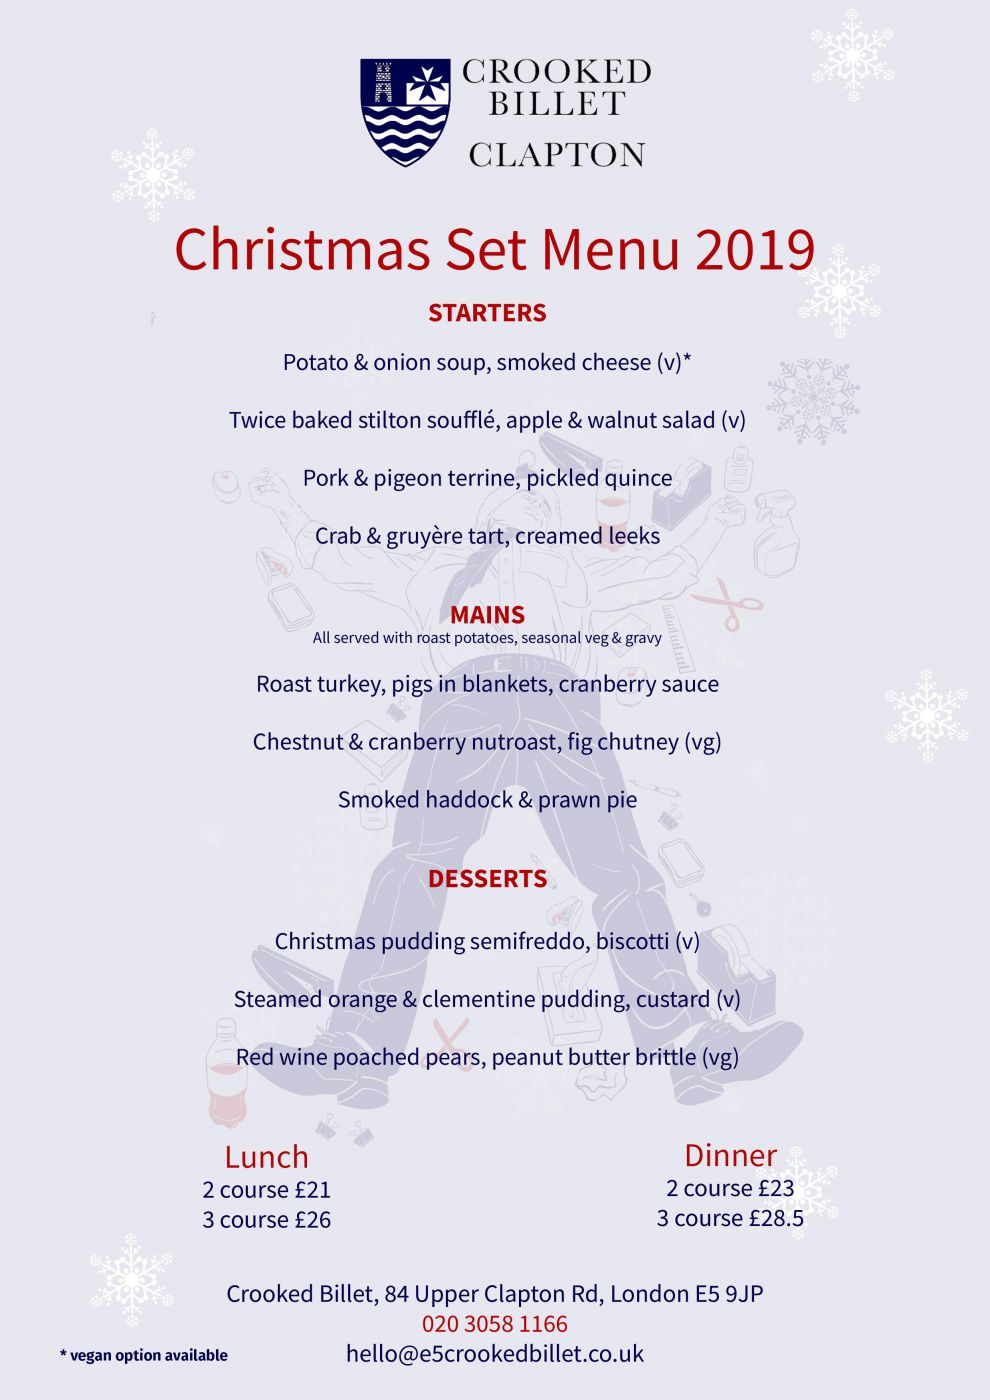 Book your Christmas meal at the Crooked Billet